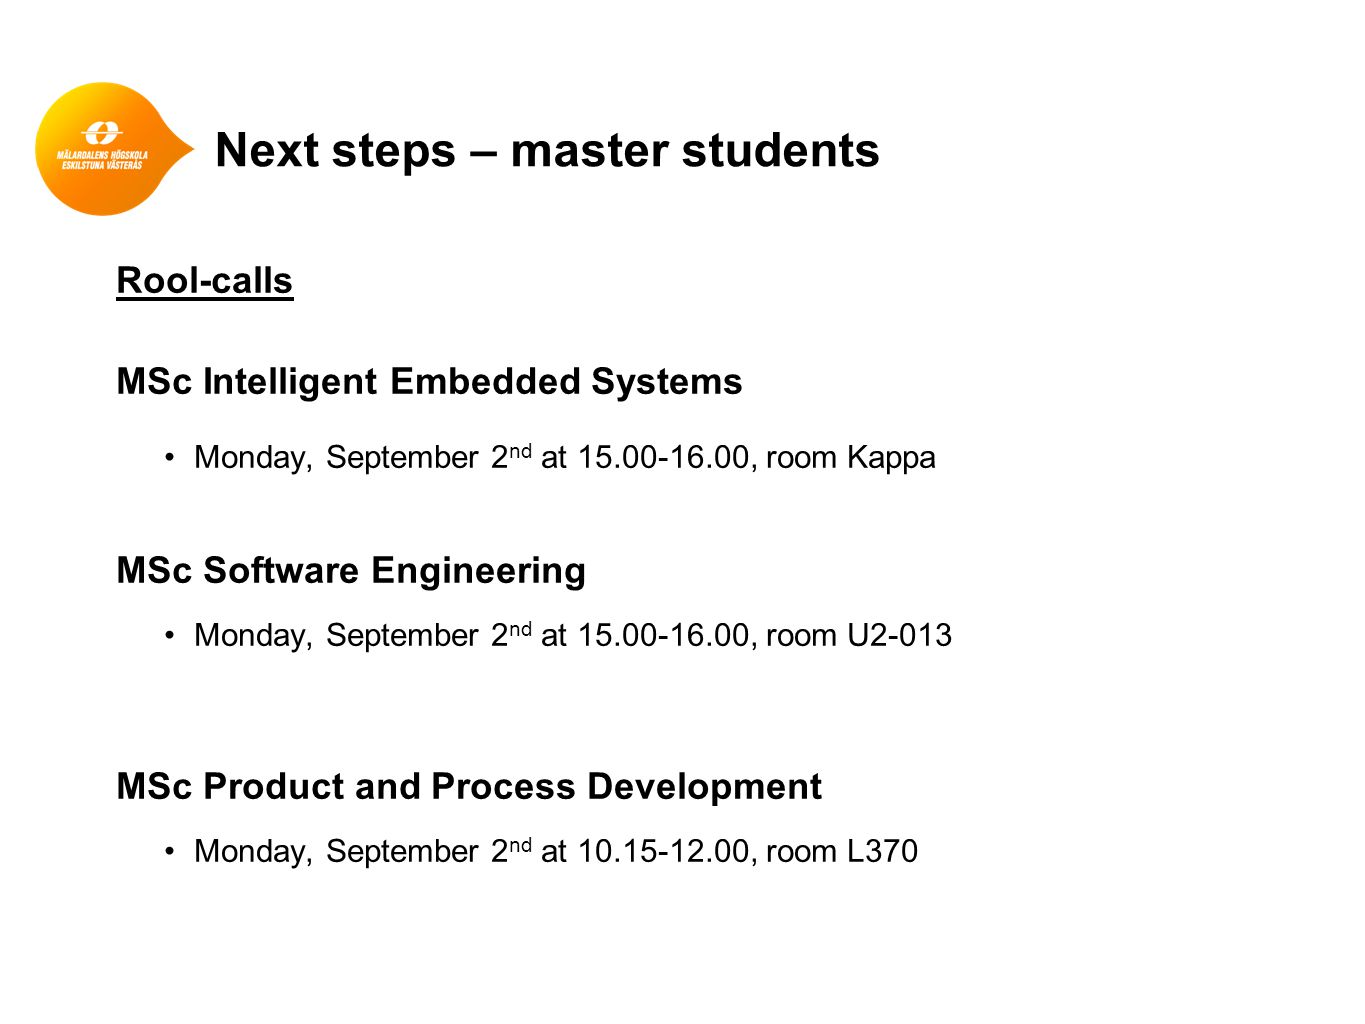 Next steps – master students Rool-calls MSc Intelligent Embedded Systems Monday, September 2 nd at 15.00-16.00, room Kappa MSc Software Engineering Monday, September 2 nd at 15.00-16.00, room U2-013 MSc Product and Process Development Monday, September 2 nd at 10.15-12.00, room L370